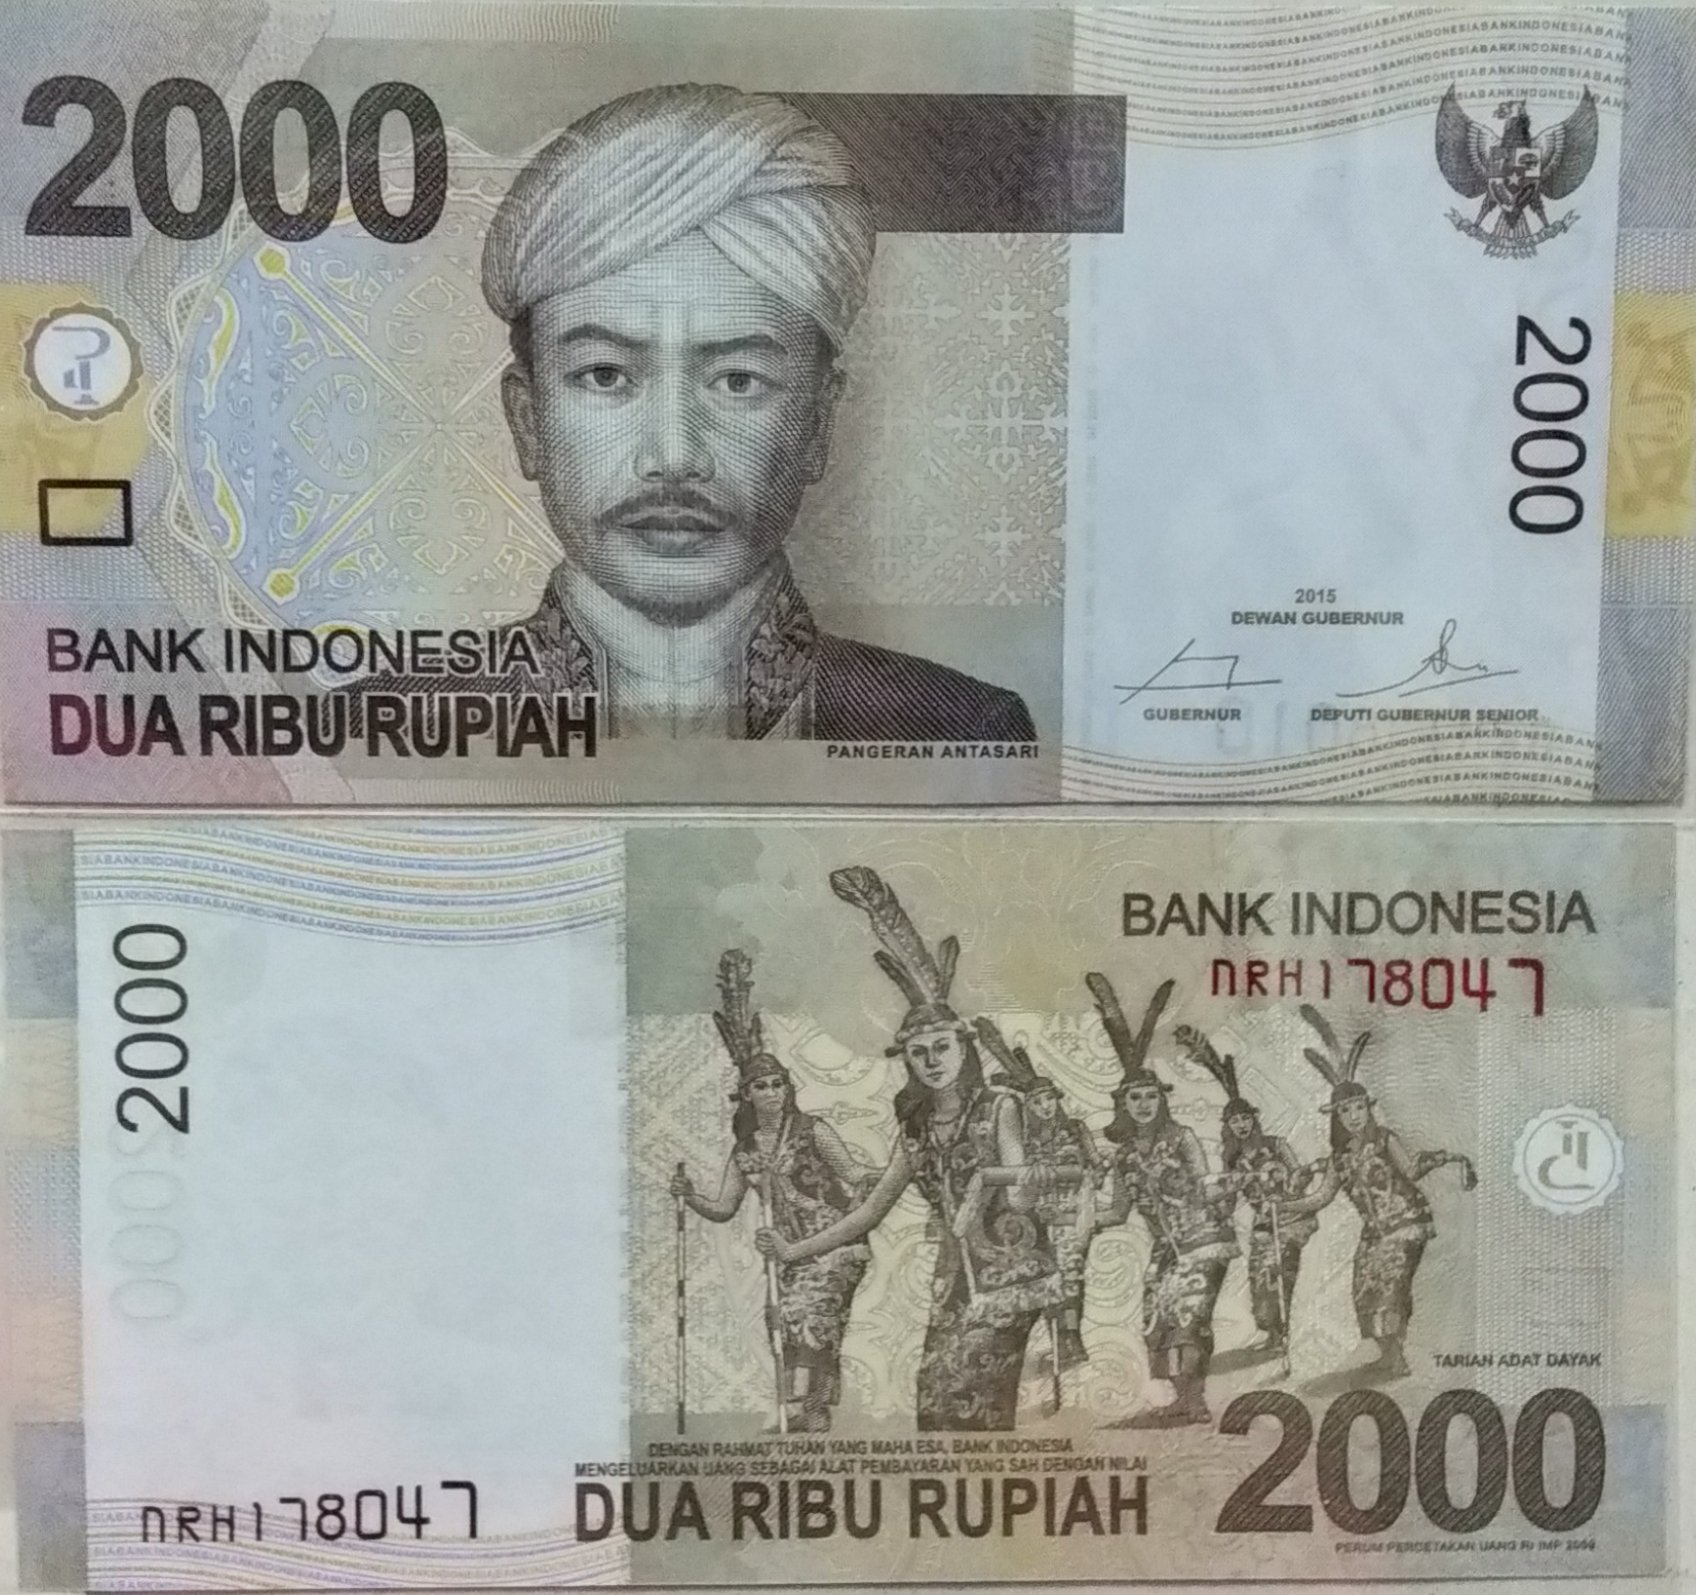 Indonesia 2000 rupiah 2015 banknote for sale